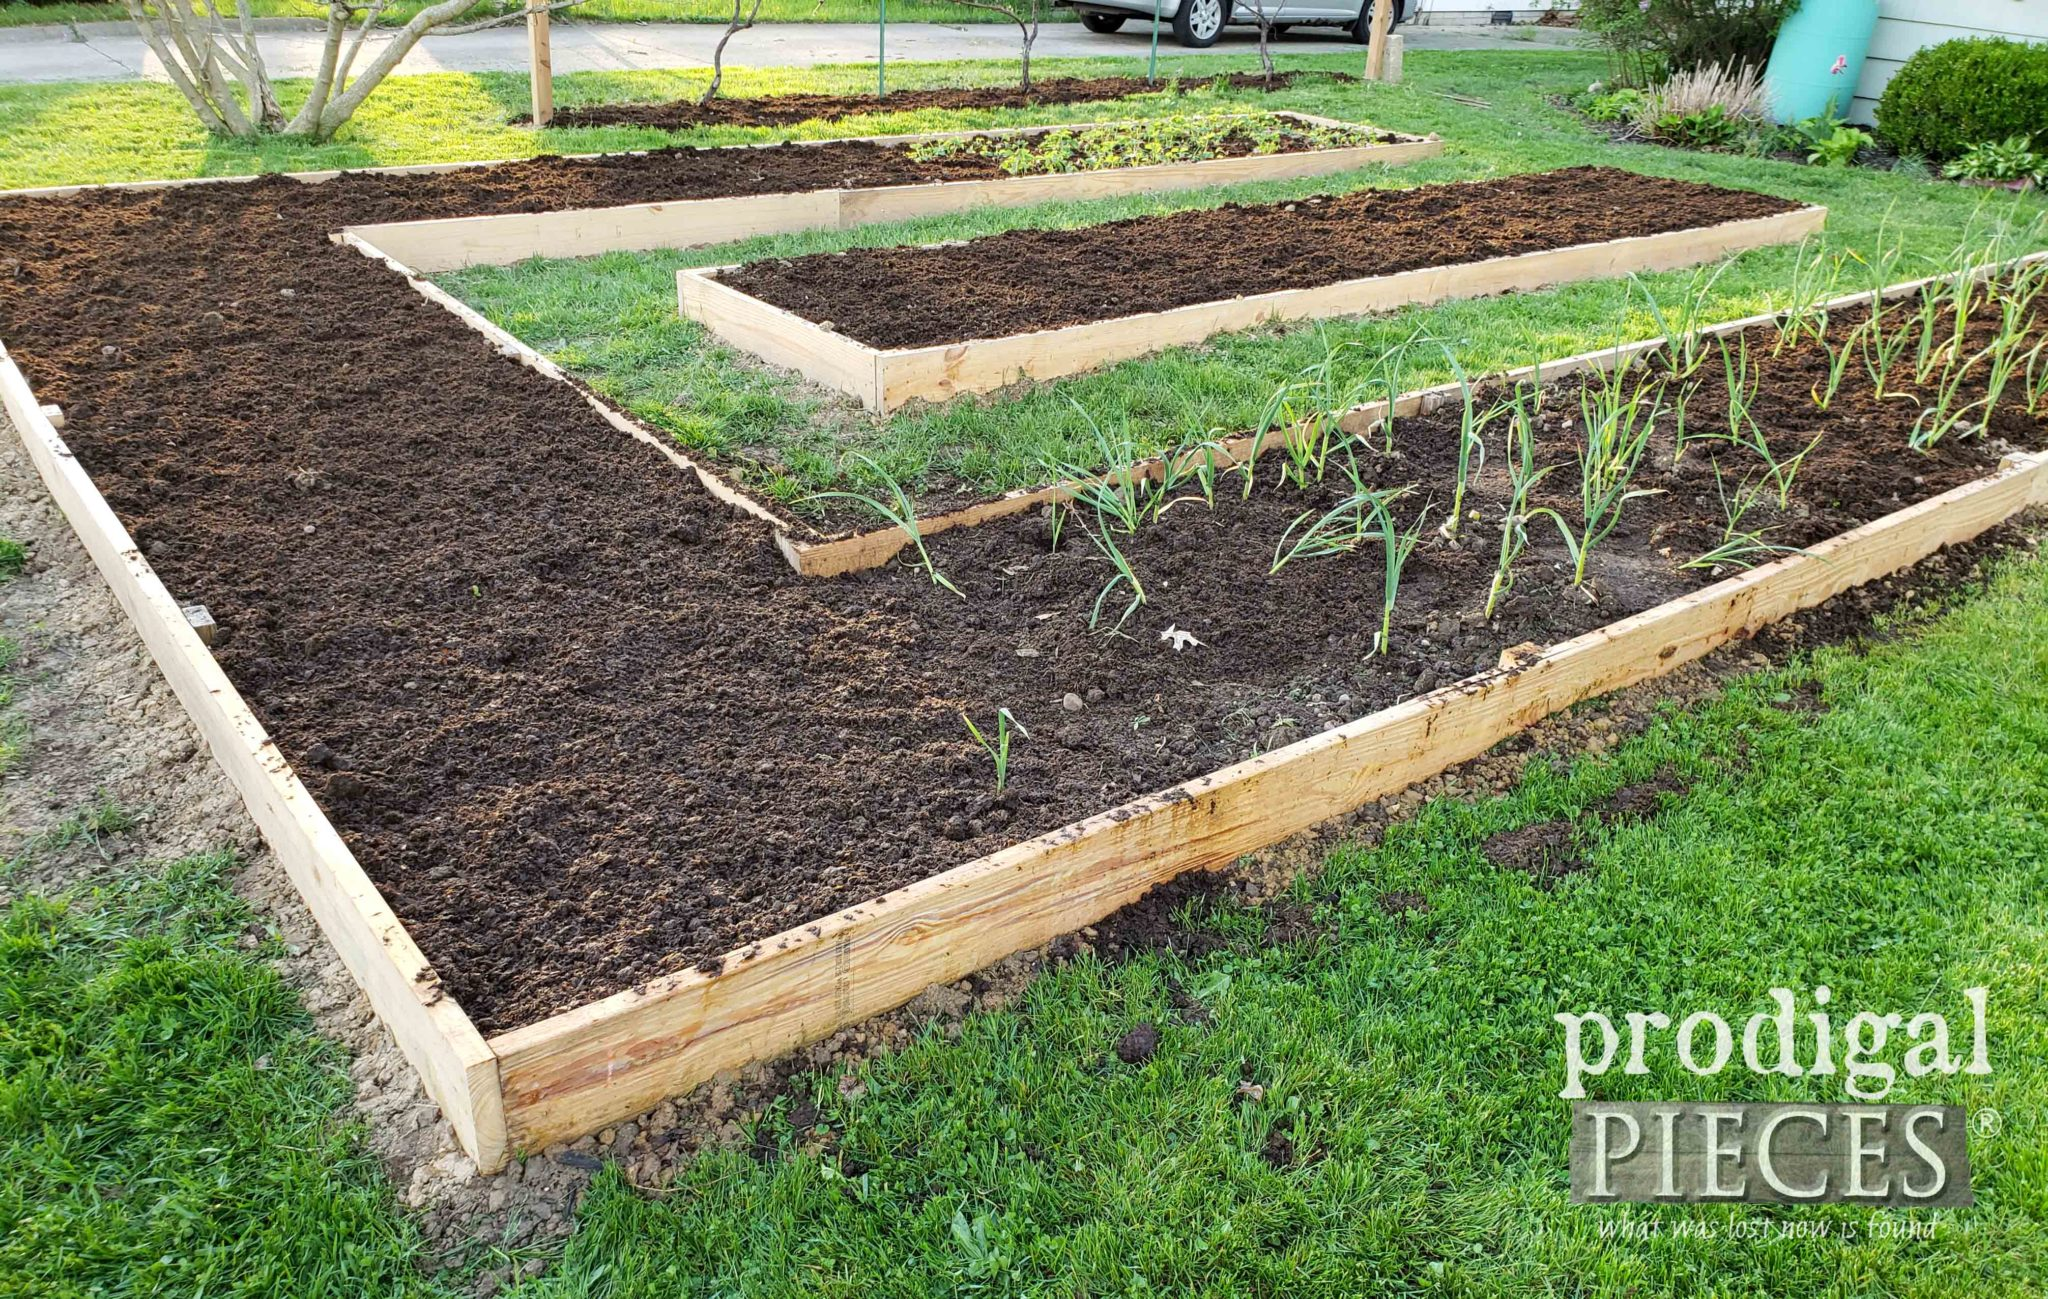 DIY Raised Garden Bed with Composted Manure | Video Tour at prodigalpieces.com #prodigalpieces #home #garden